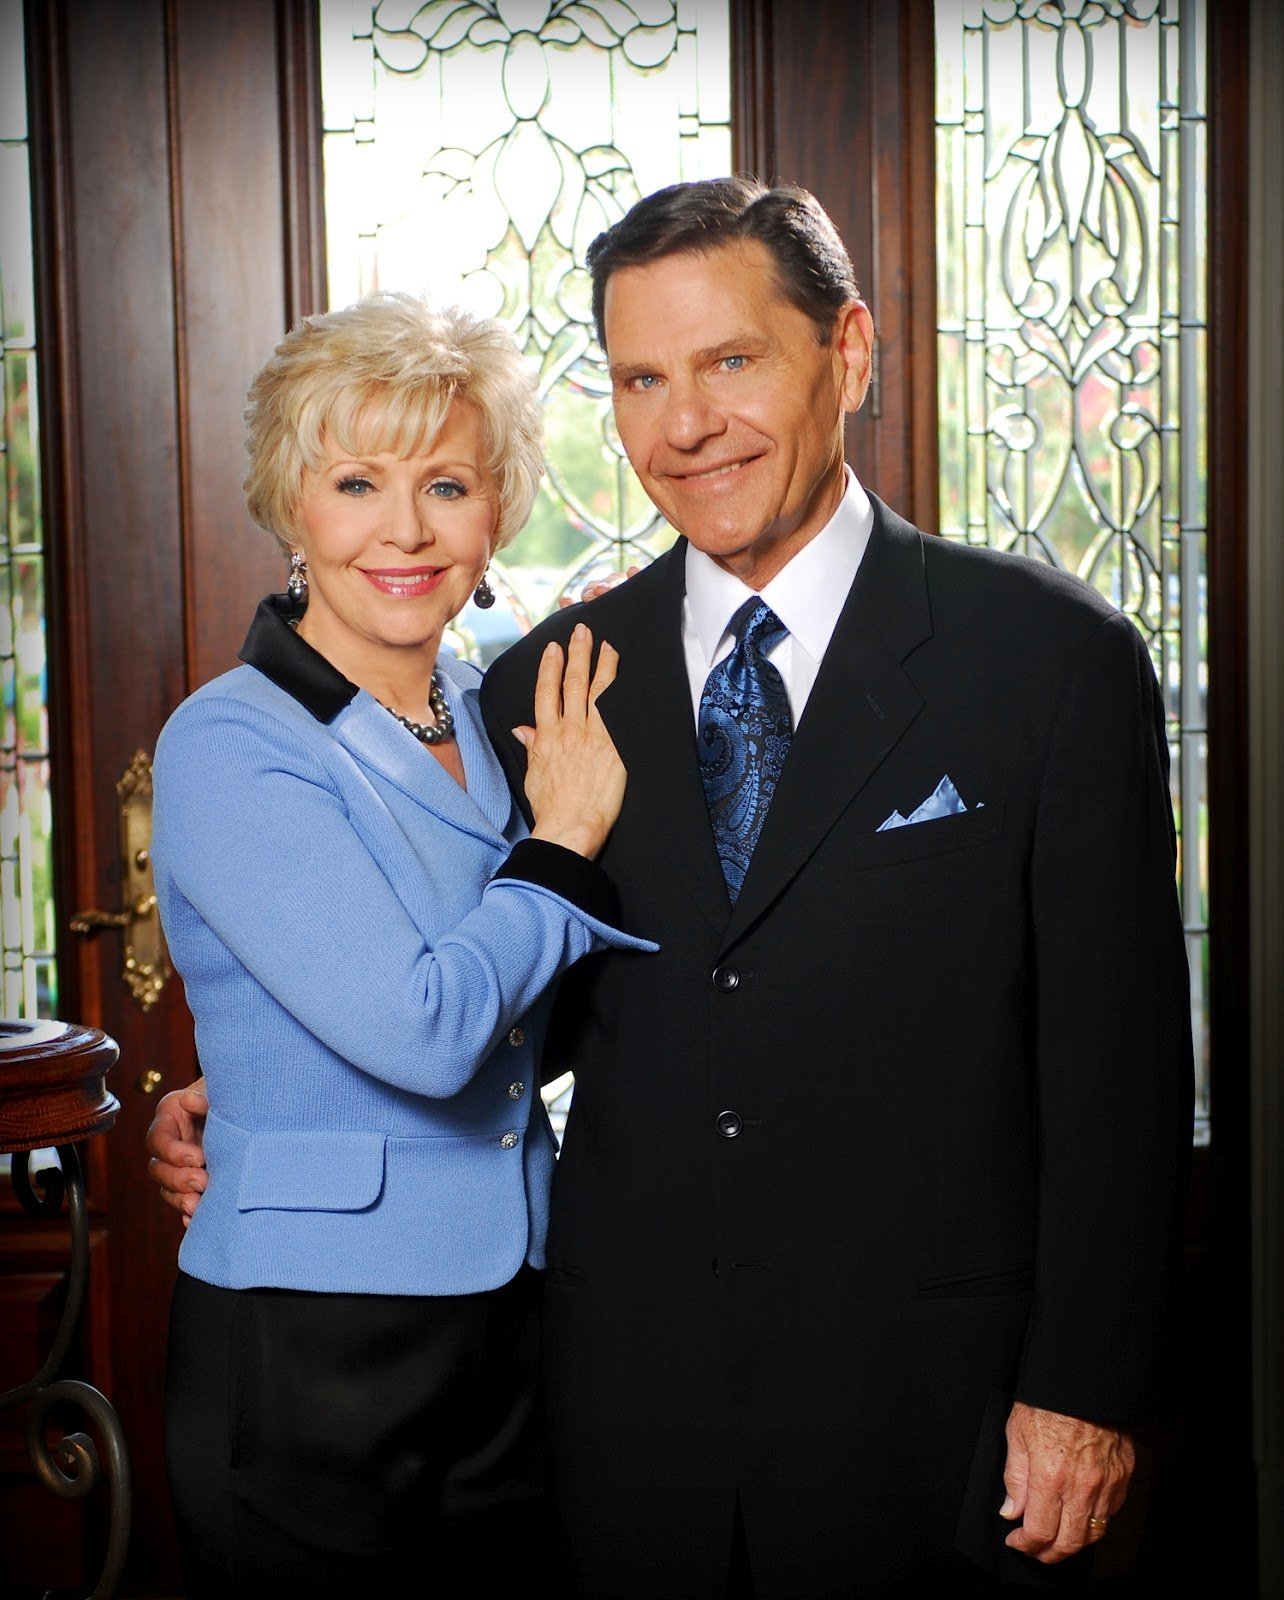 Kenneth Copeland Devotional 17th June 2020, Kenneth Copeland Devotional 17th June 2020 – Open Their Eyes to the Light, Premium News24